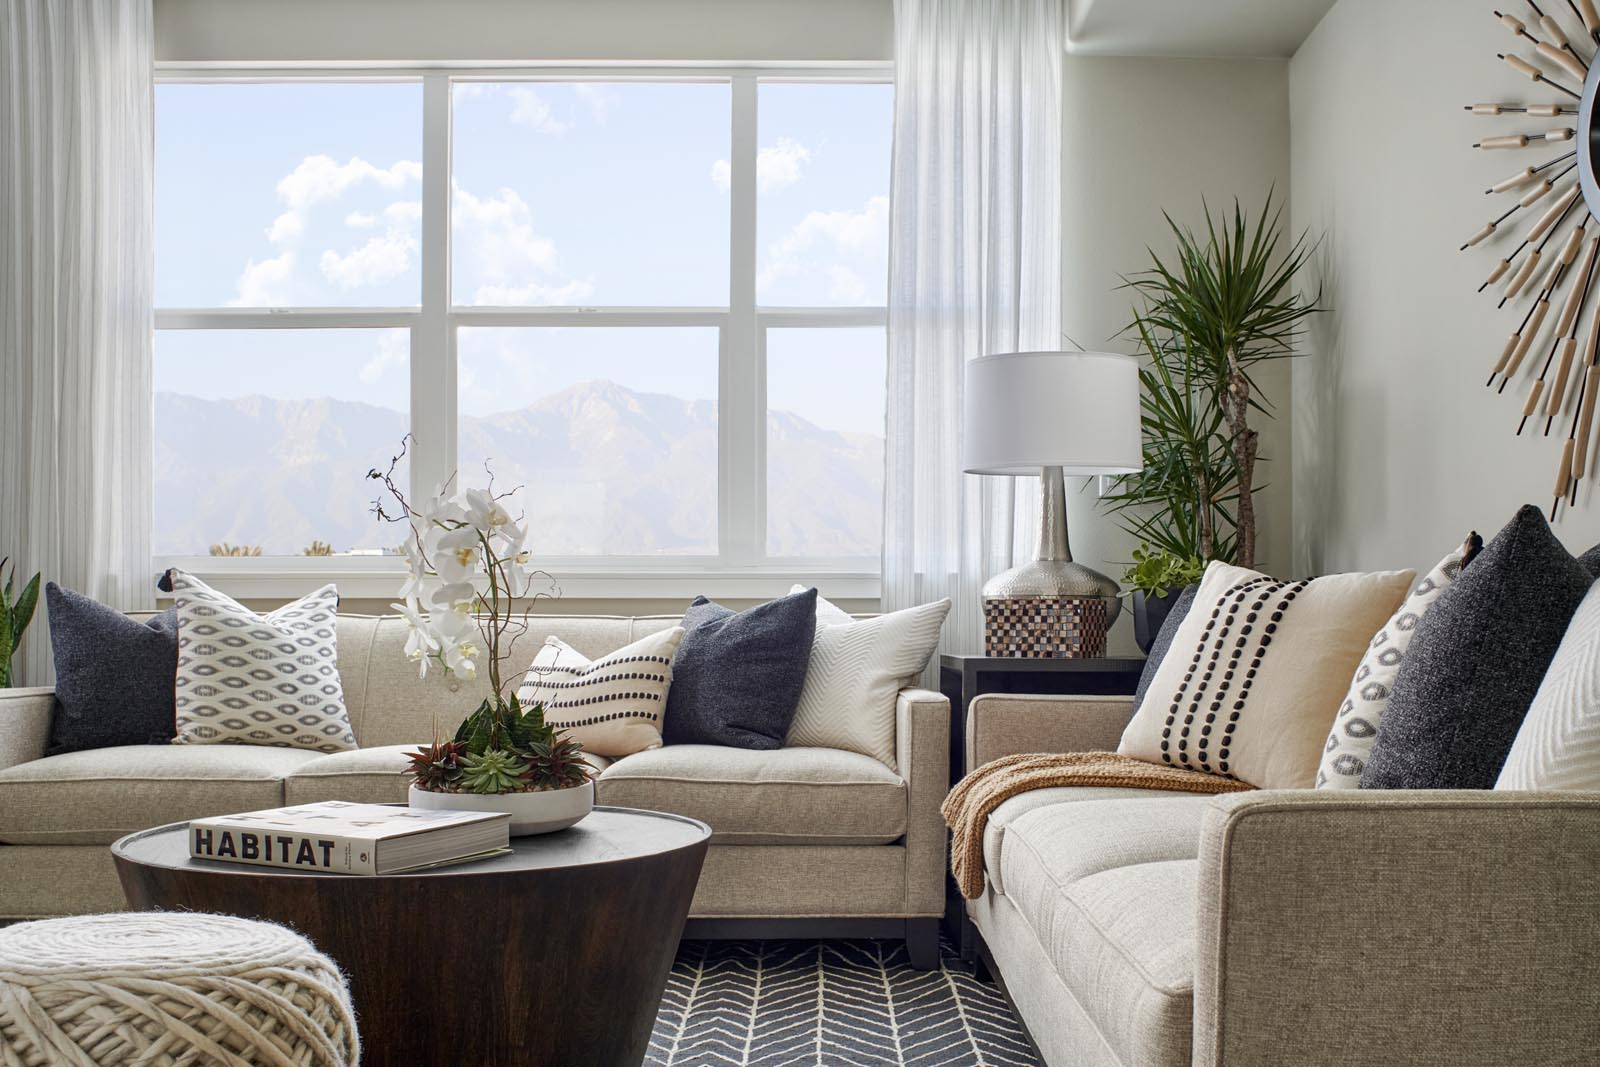 Great Room   Residence 2   Enliven   New Homes in Rancho Cucamonga, CA   Van Daele Homes